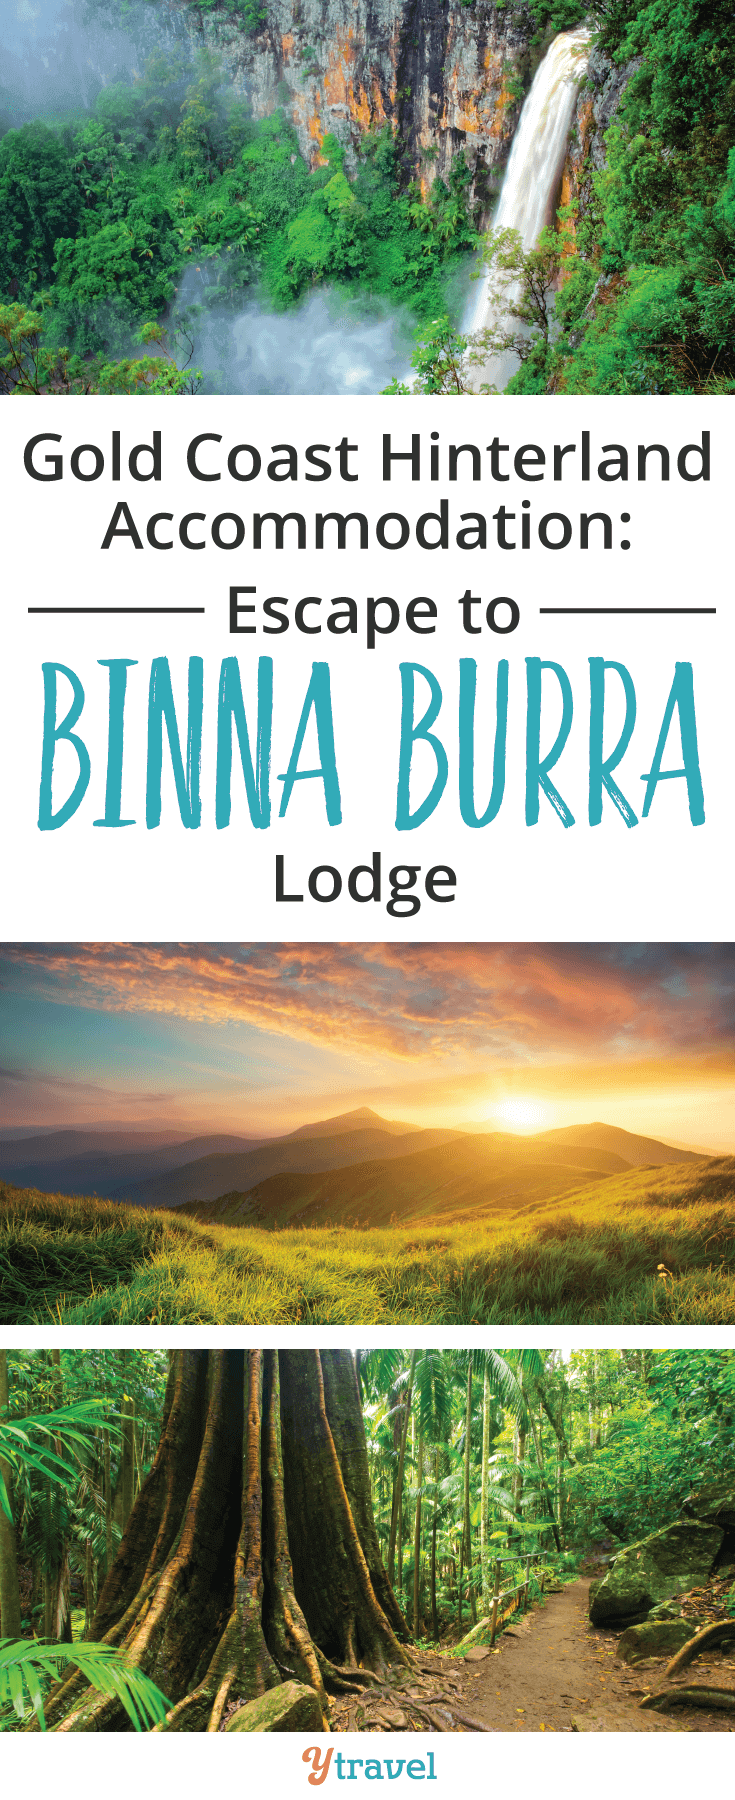 Looking for an awesome weekend getaway? Check out the Gold Coast Hinterland Accommodation at Binna Burra Lodge!